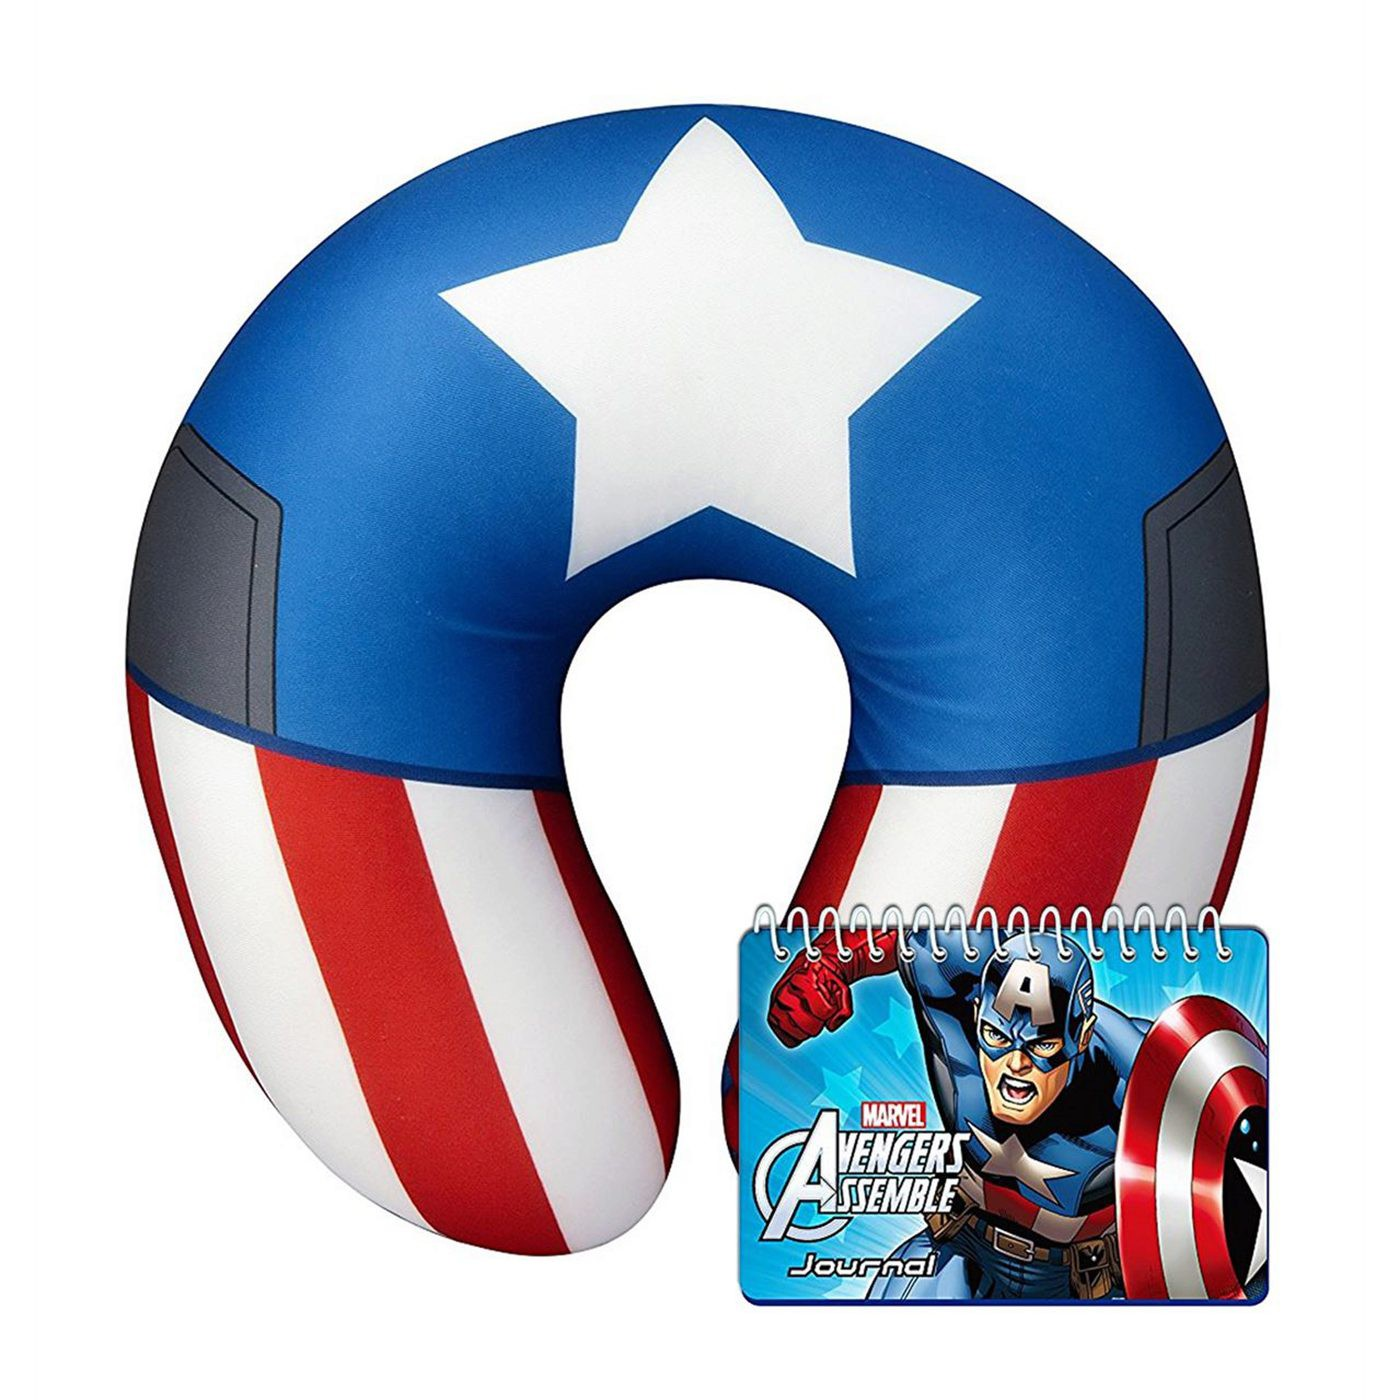 Captain America Neck Pillow and Journal Book Set